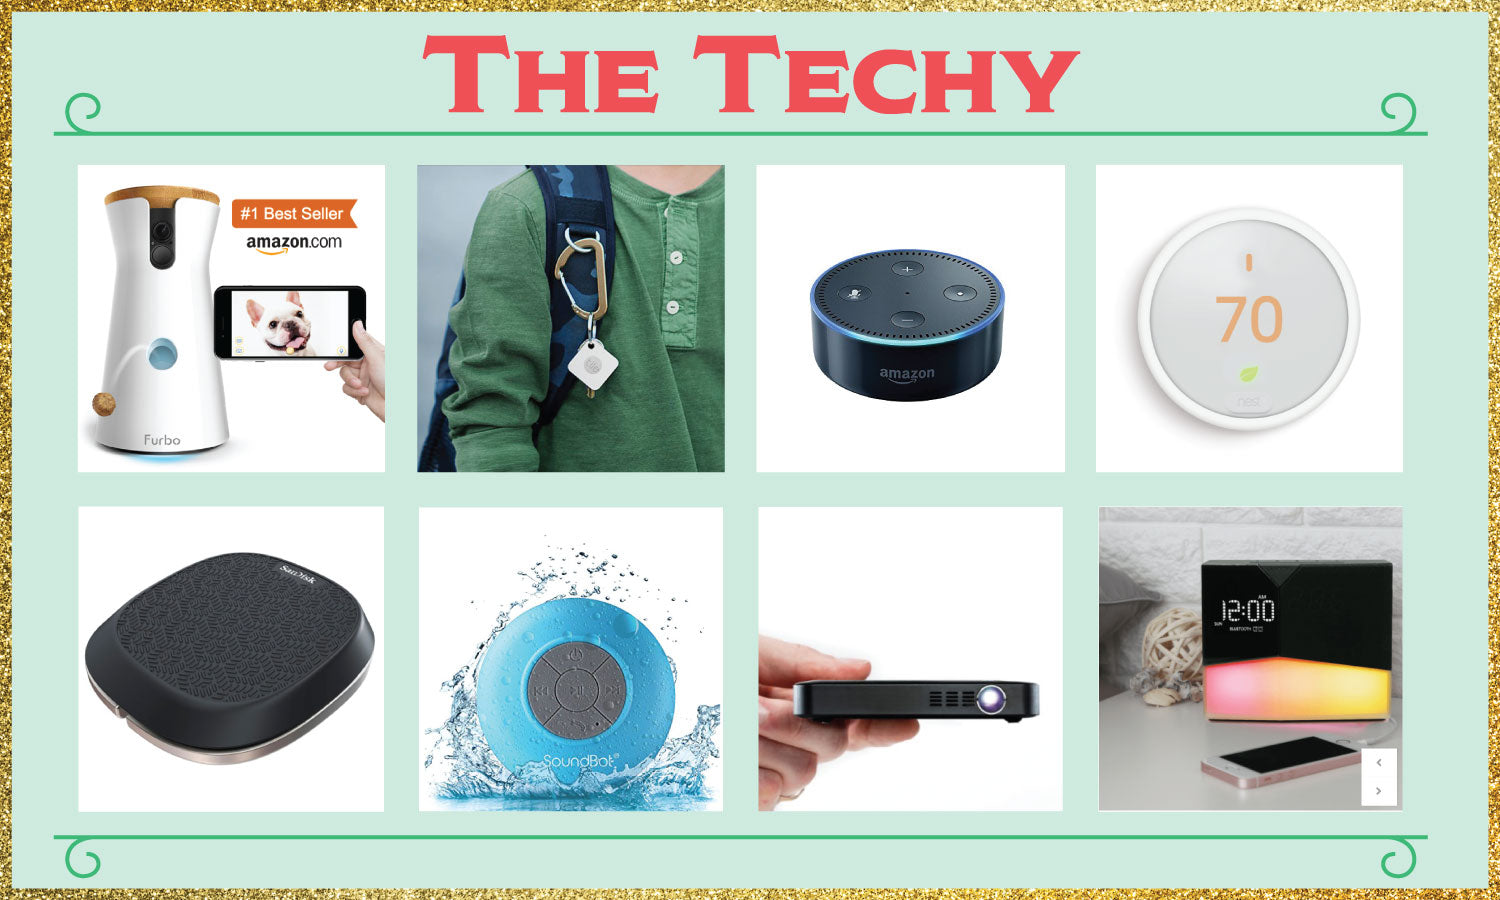 Gifts For the Techy